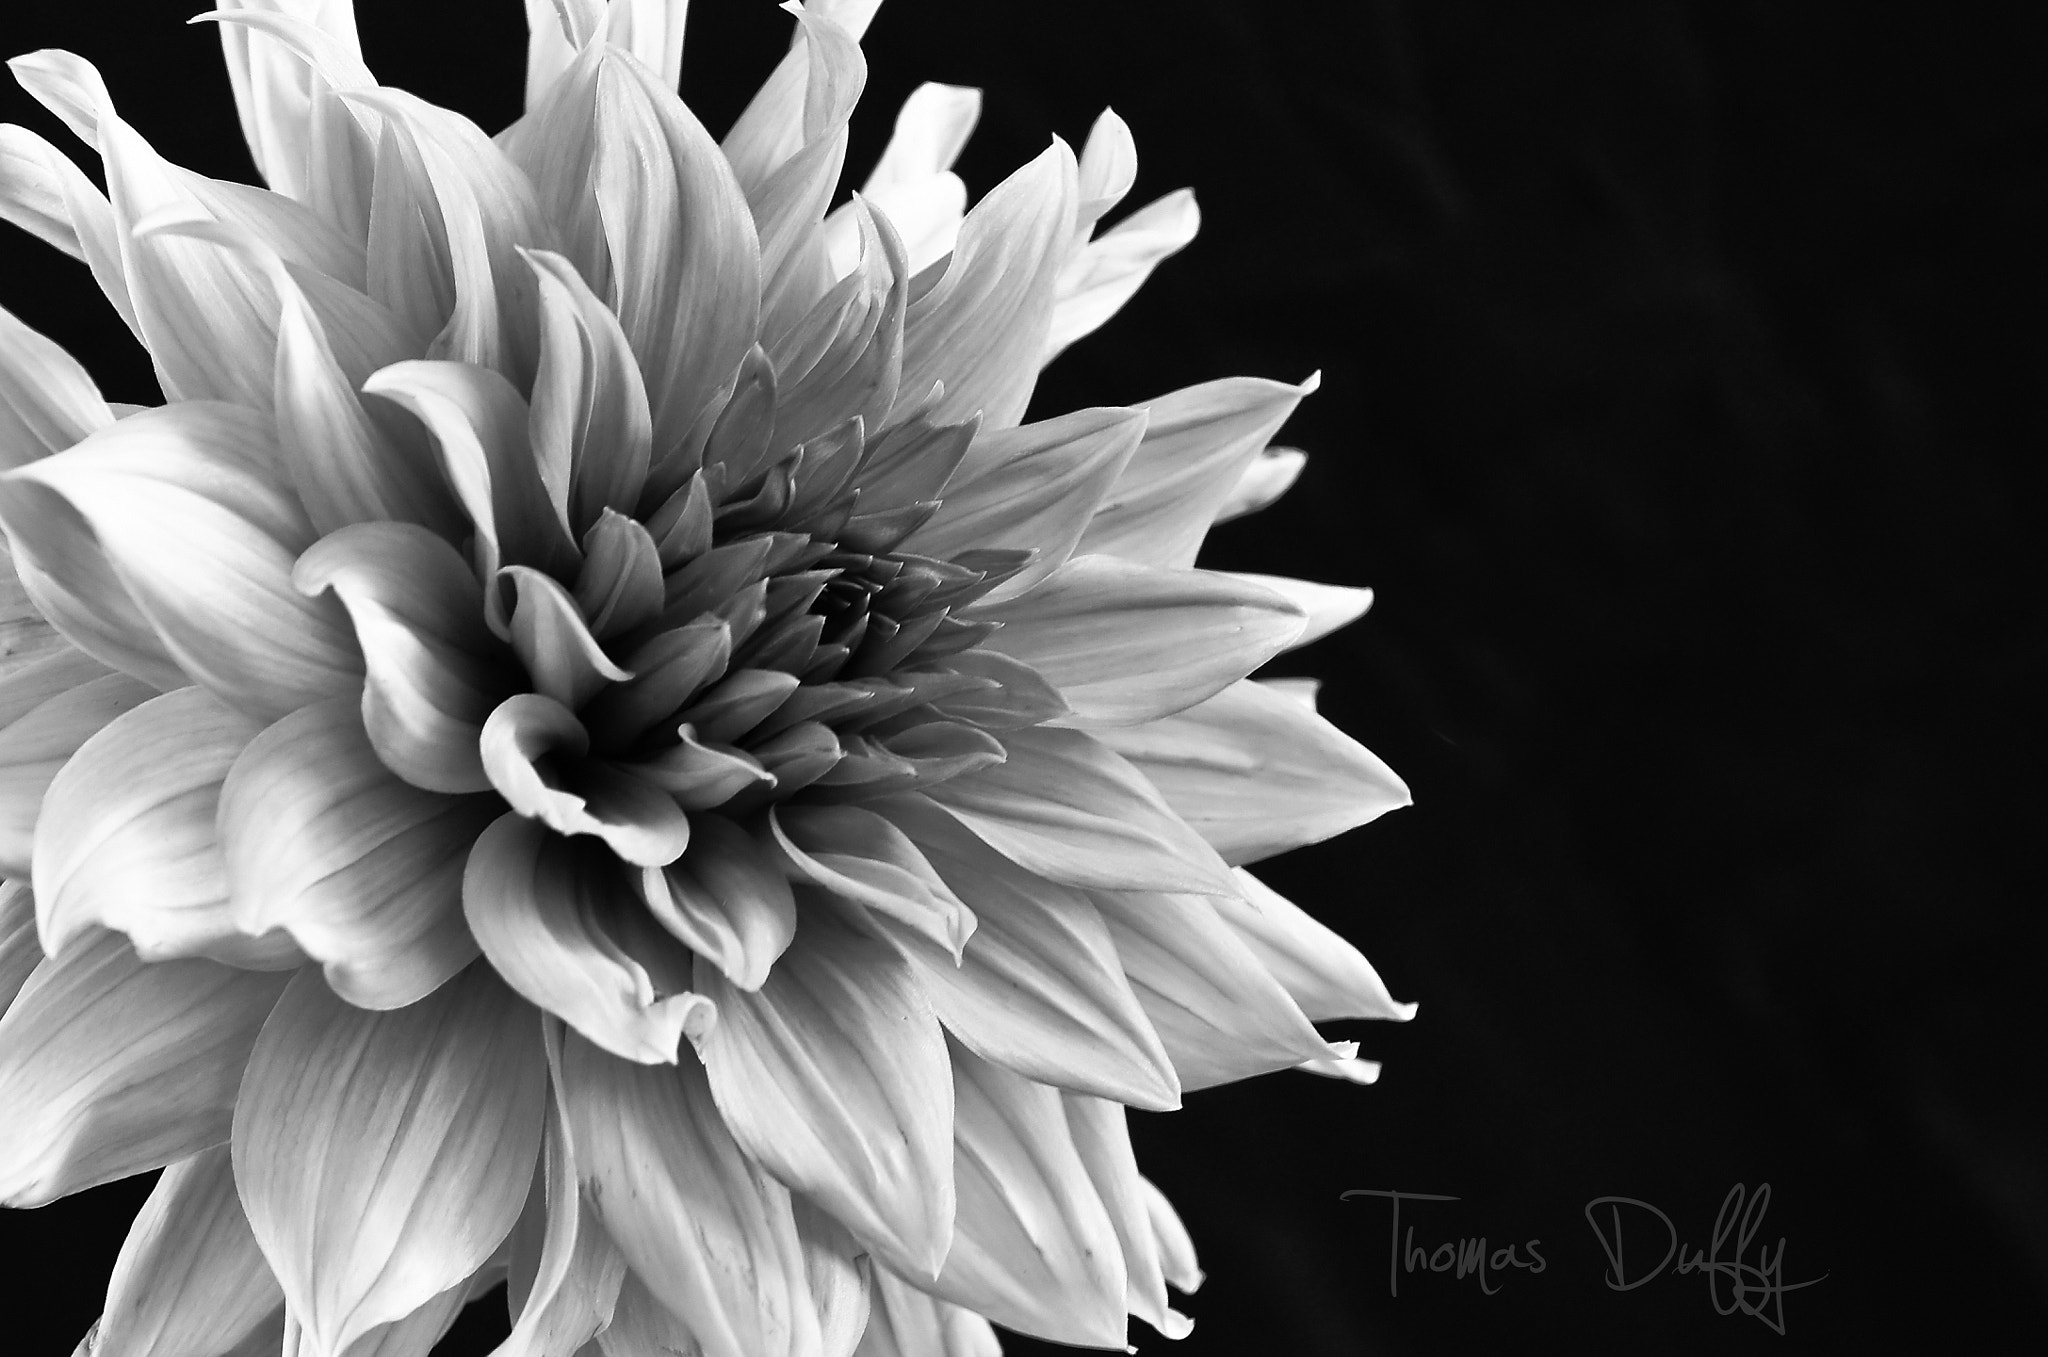 Photograph Dahlia in Black and White! by Thomas Duffy on 500px